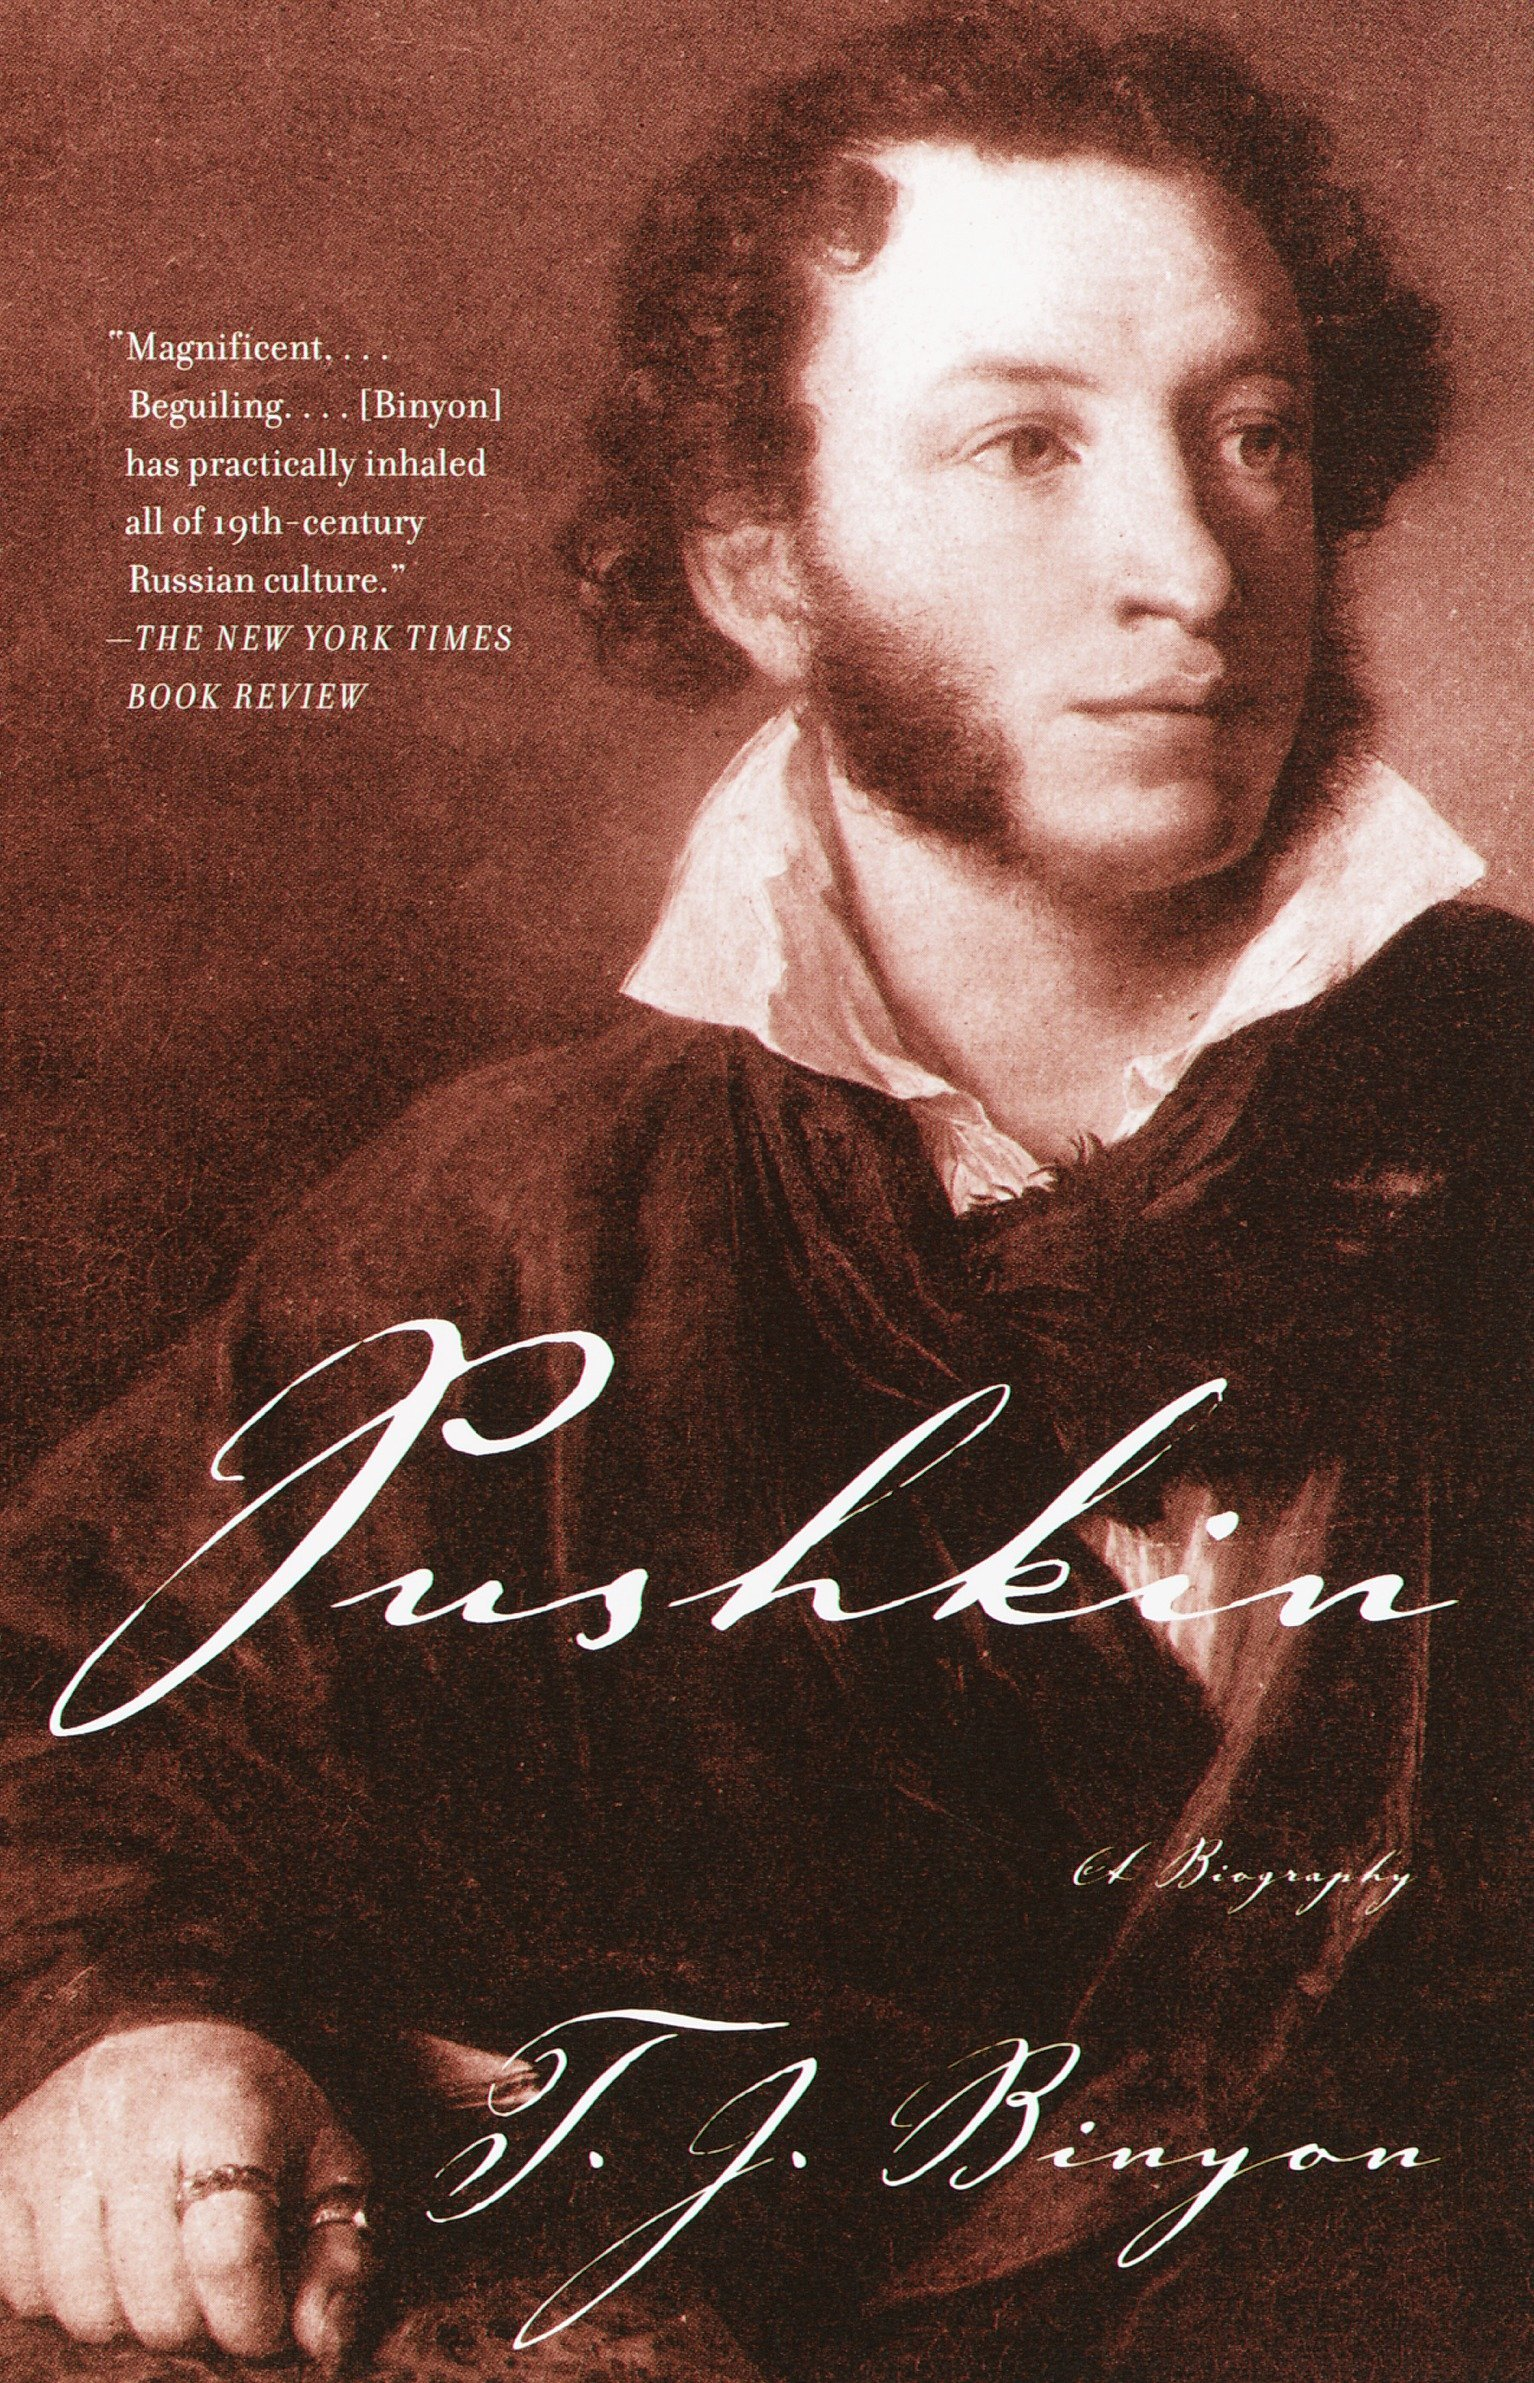 What you did not know from the biography of Pushkin